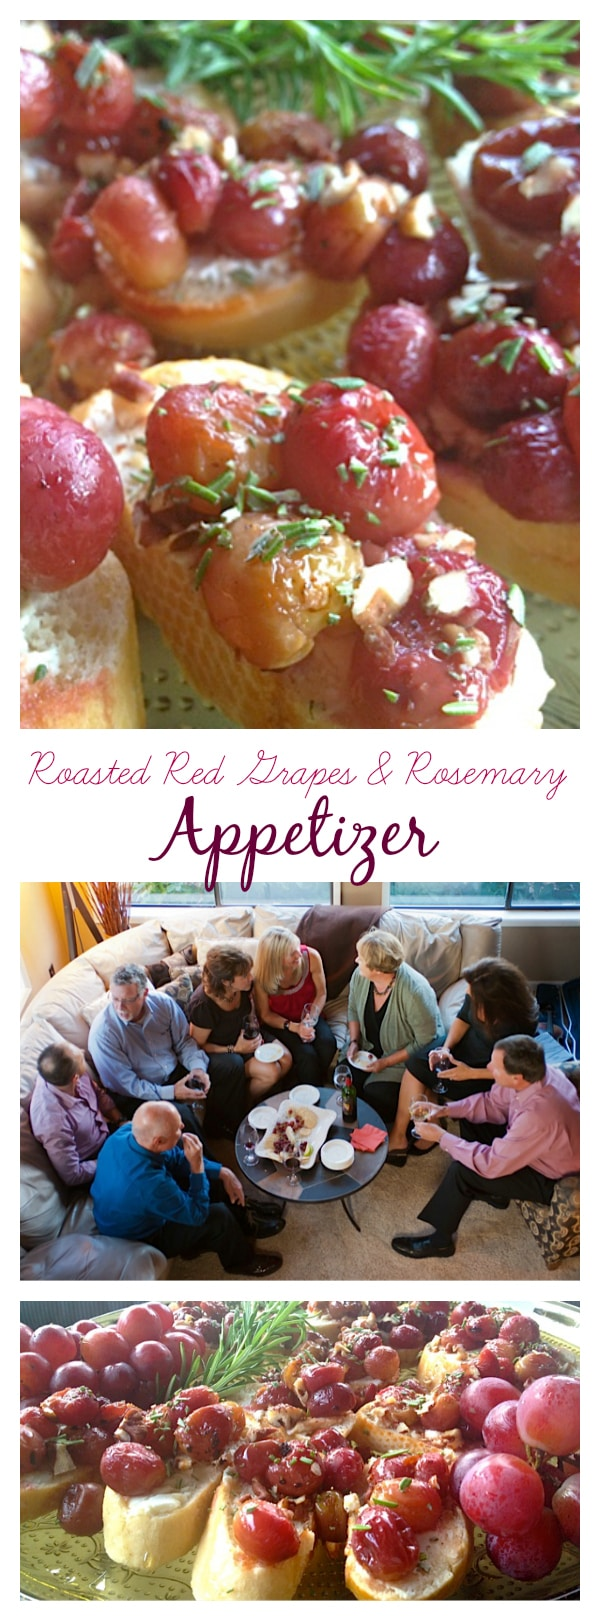 The Purpose of the Home (easy entertaining) with Roasted Red Grapes & Rosemary Appetizer